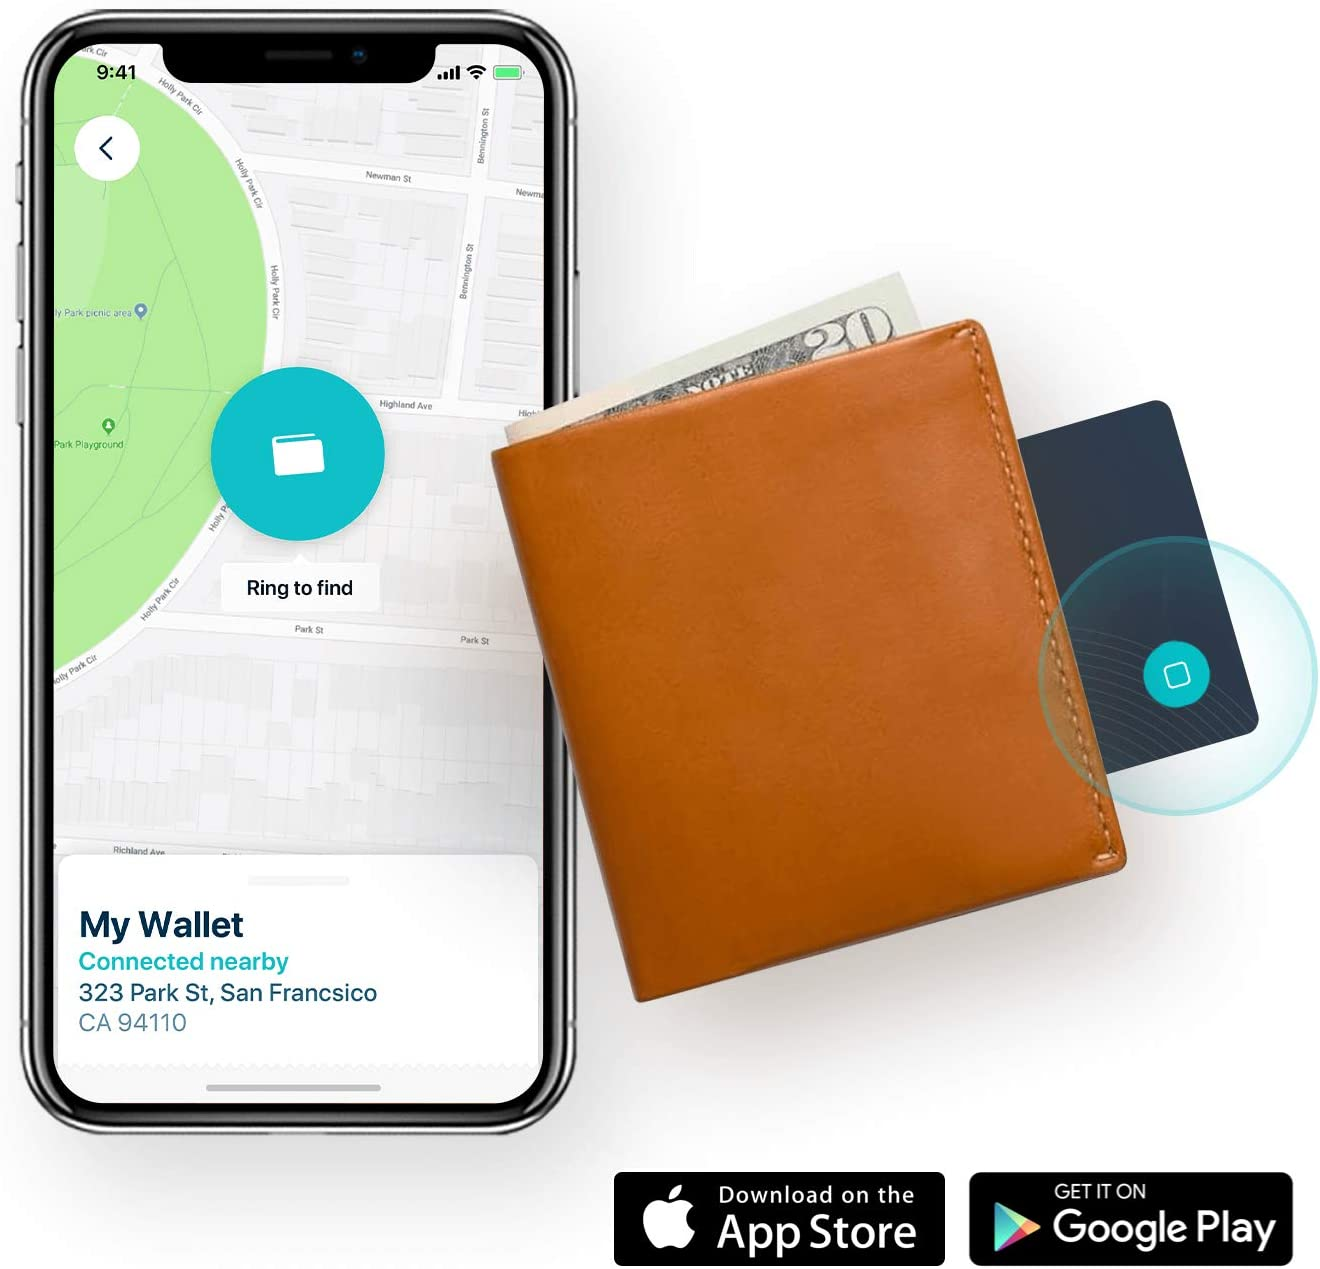 Ultra Slim Rechargeable Bluetooth Tracker 2 Cards // 1 Charger with a Lifespan of Over 8 Years Ever Again You/'ll Never Lose Your Wallet Phone Locator Finder Card Safedome or Anything Purse